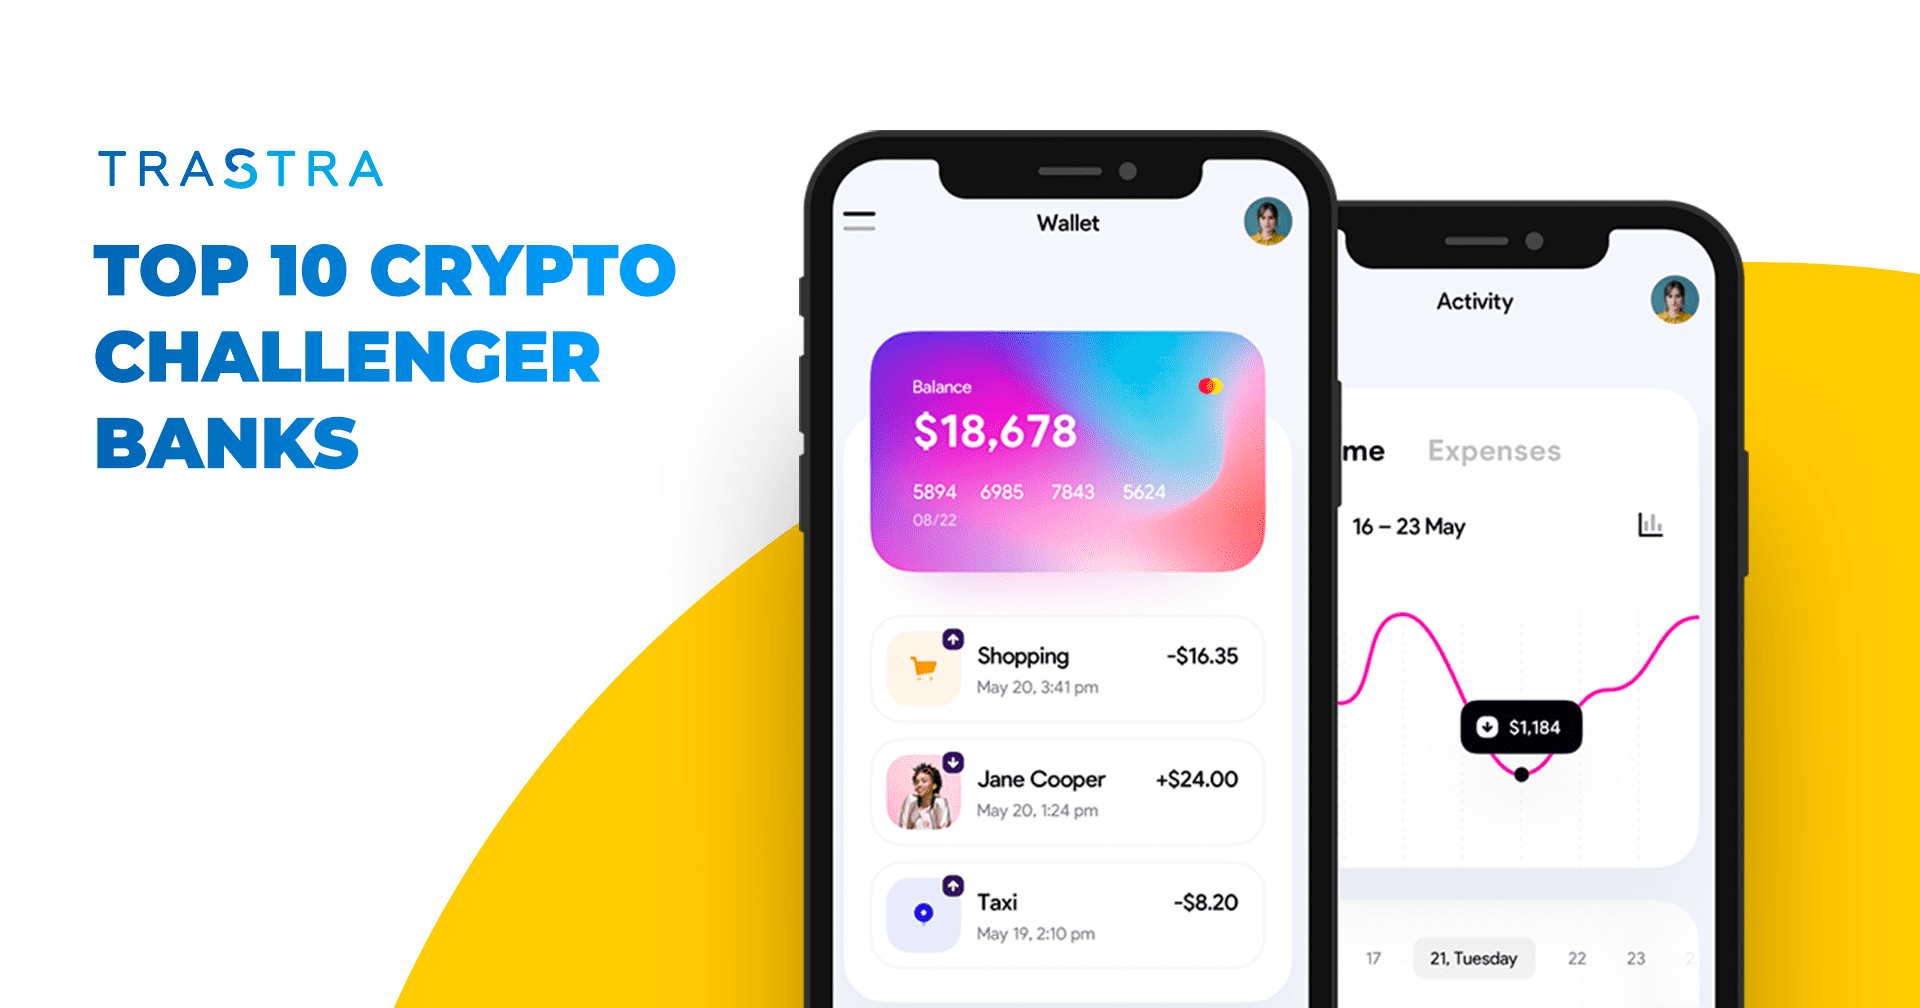 digital banking platforms, digital banks, challenger banks, Fintech industry, trastra, bitcoin, crypto, cryptocurrency, crypto bank operations, banking industry, Bitcoin challenger banks